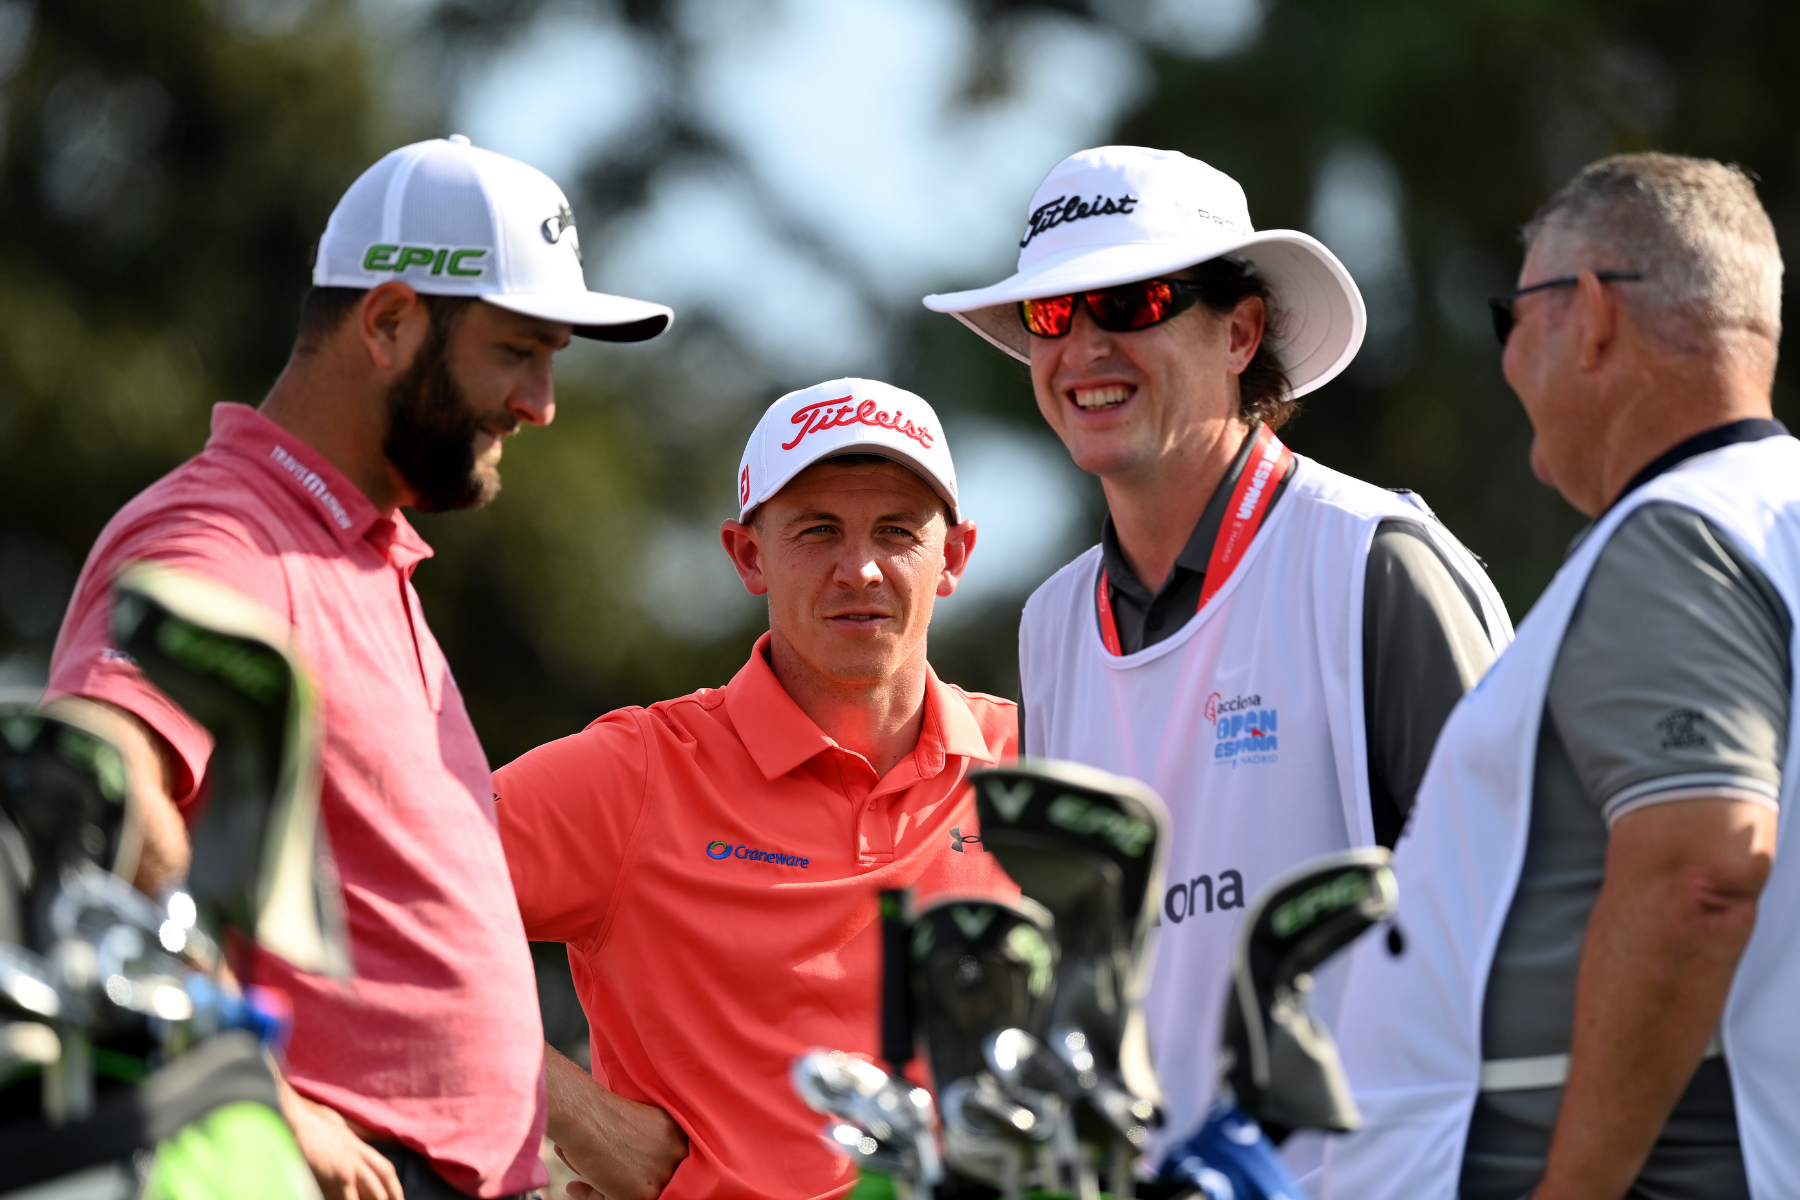 Grant Forrest ready for another Spanish scorcher after outshining Jon Rahm